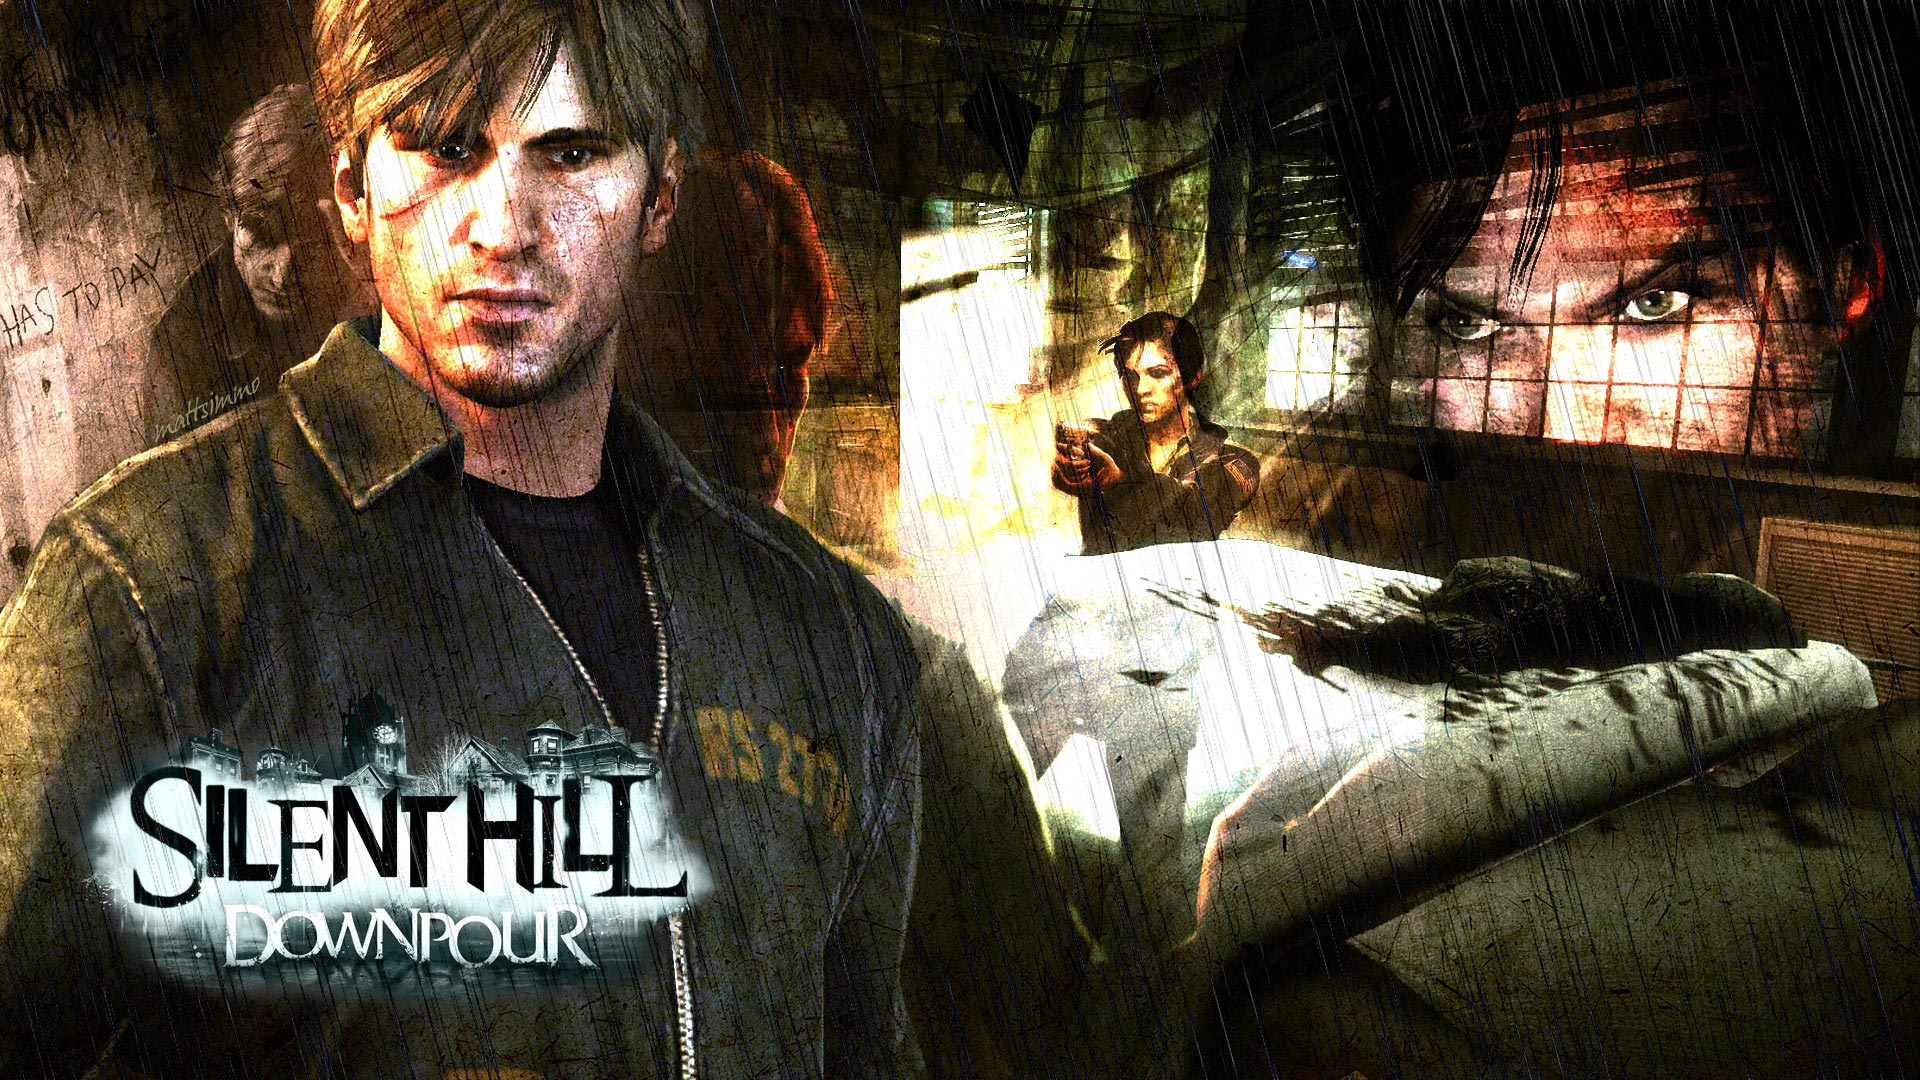 Silent Hill Hd Wallpaper Background Image 1920x1080 Id204369